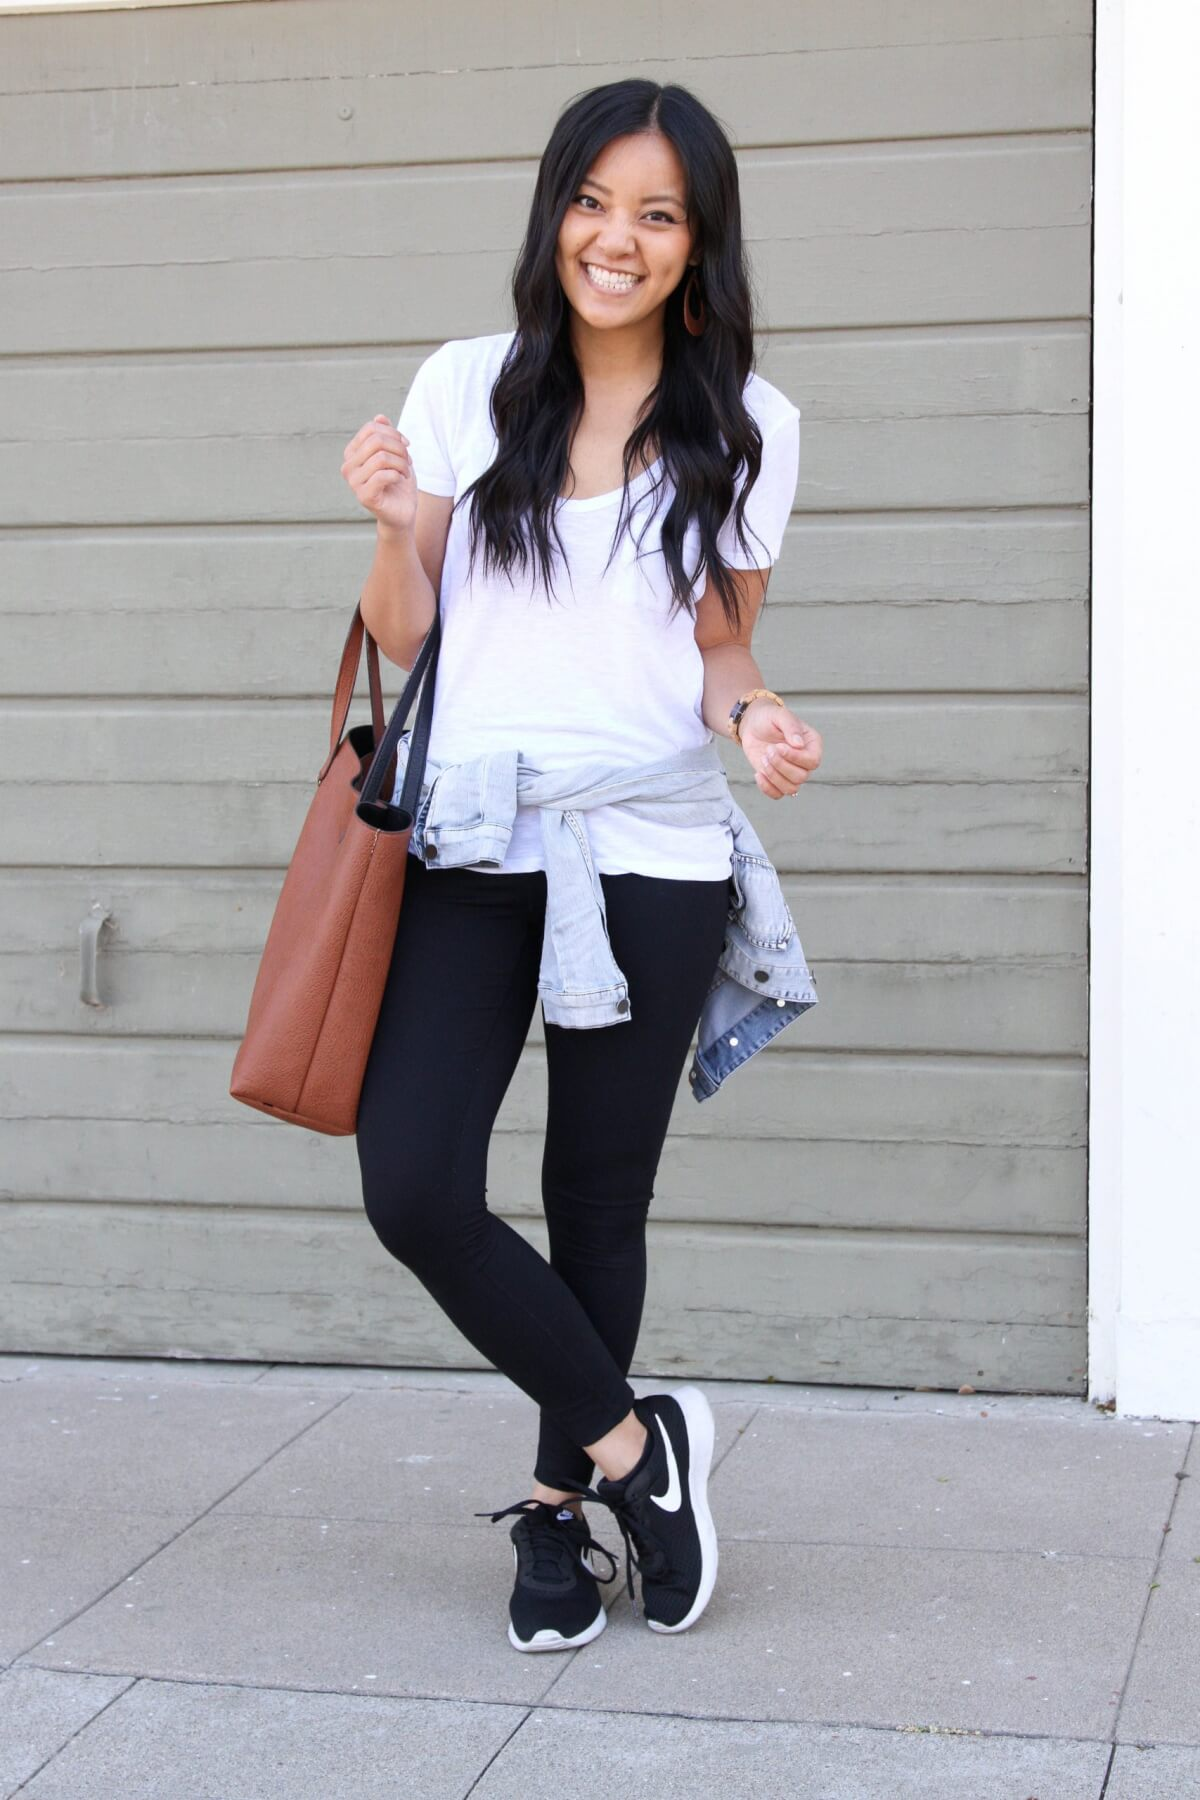 denim jacket outfit: denim jacket + white tee + black leggings + black sneakers + tan earrings + brown tote